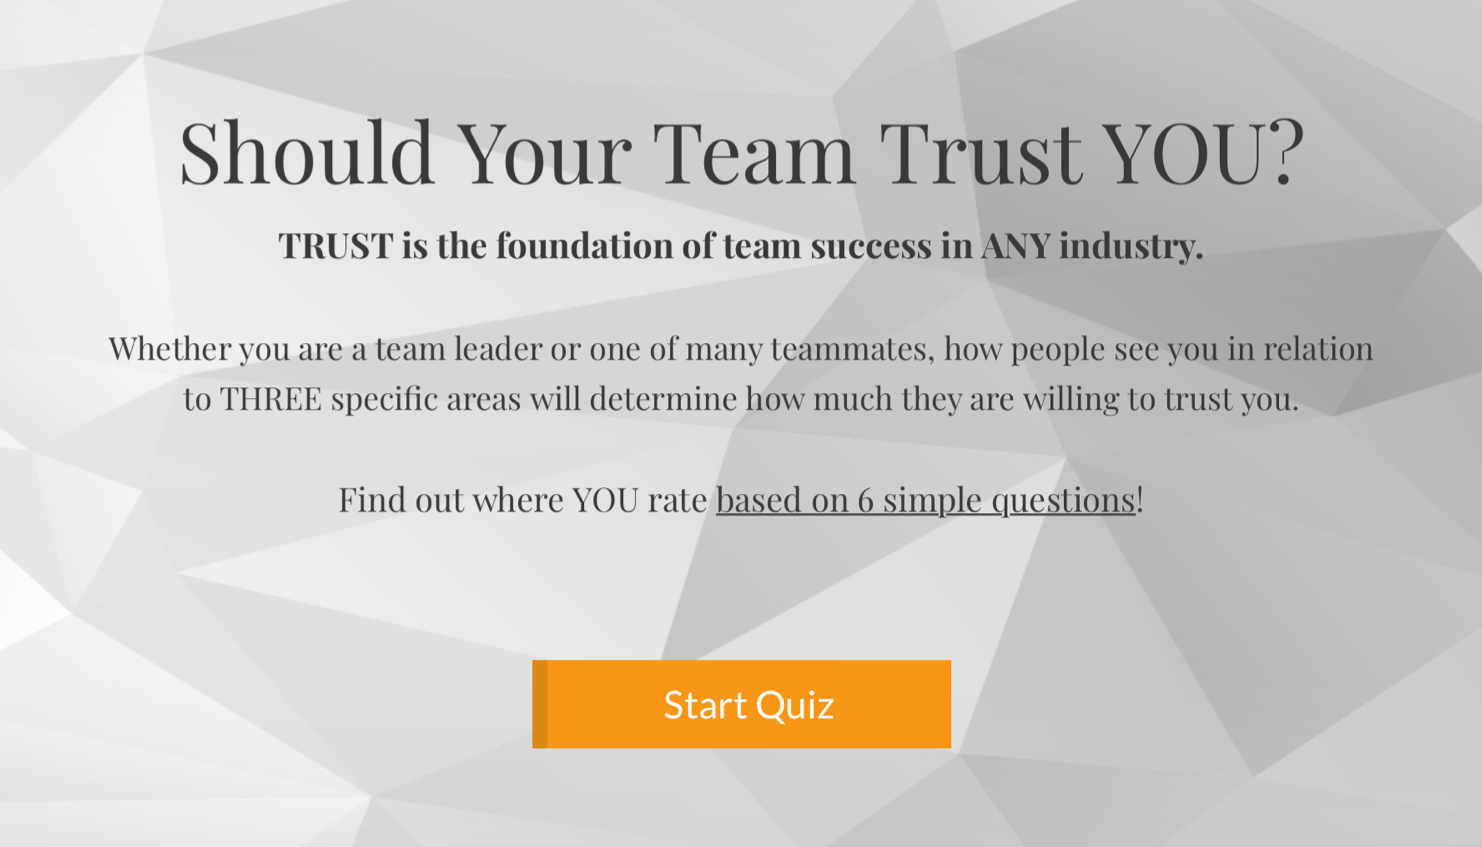 25 Funny Questions to Get to Know Your Team - Great Results